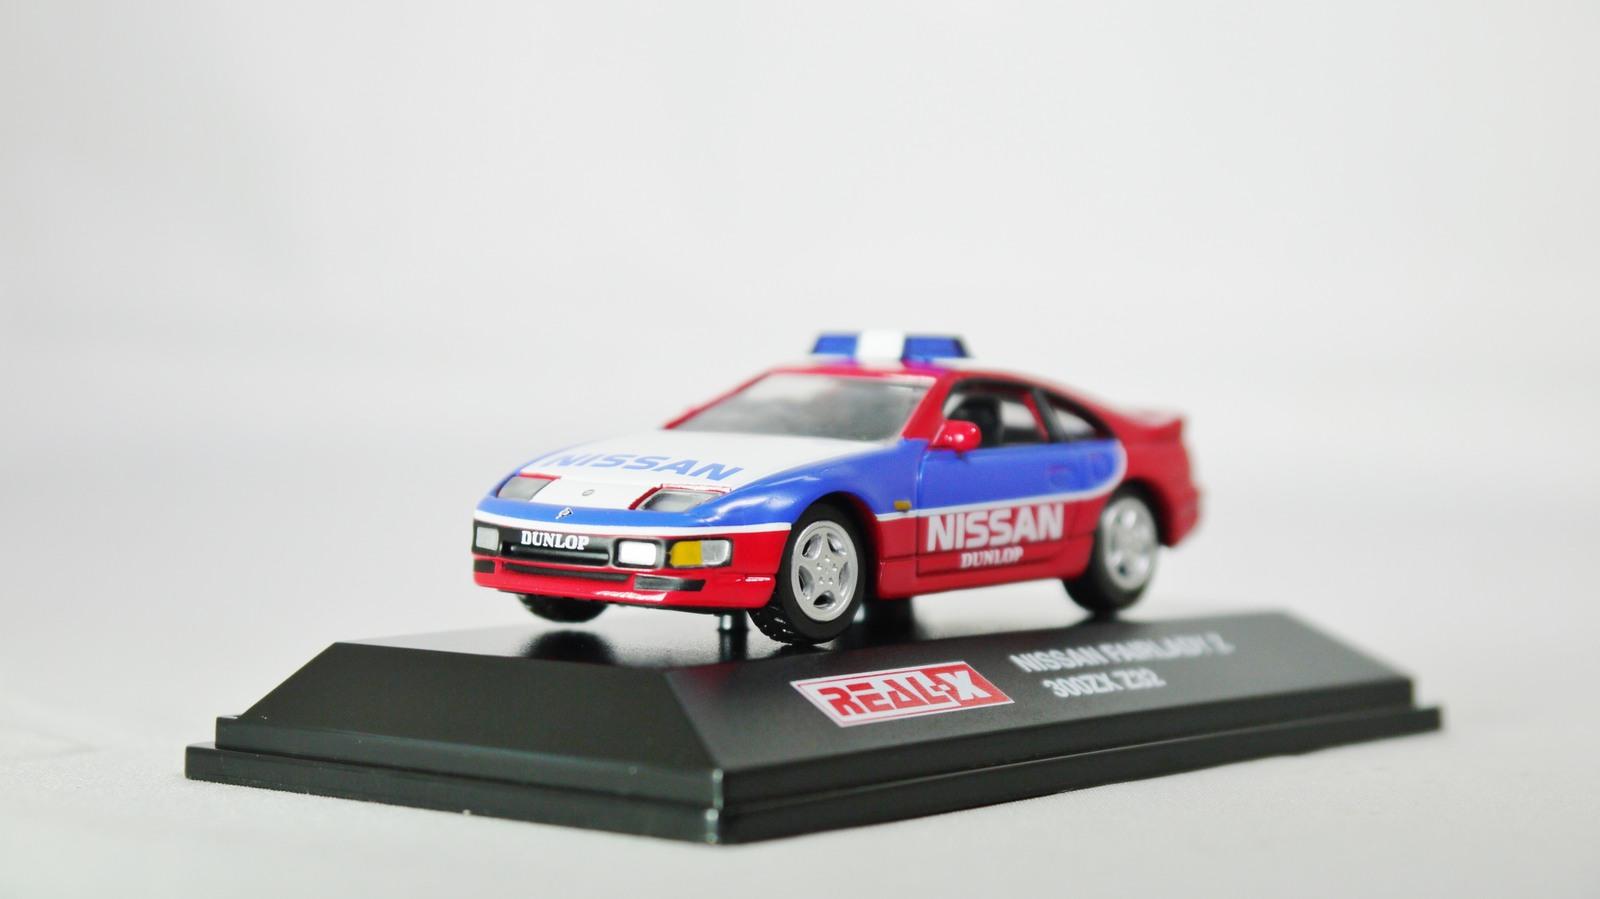 Real x 1 72 nissan racing car fairlady z 300zx z32 safety car ble   red 02